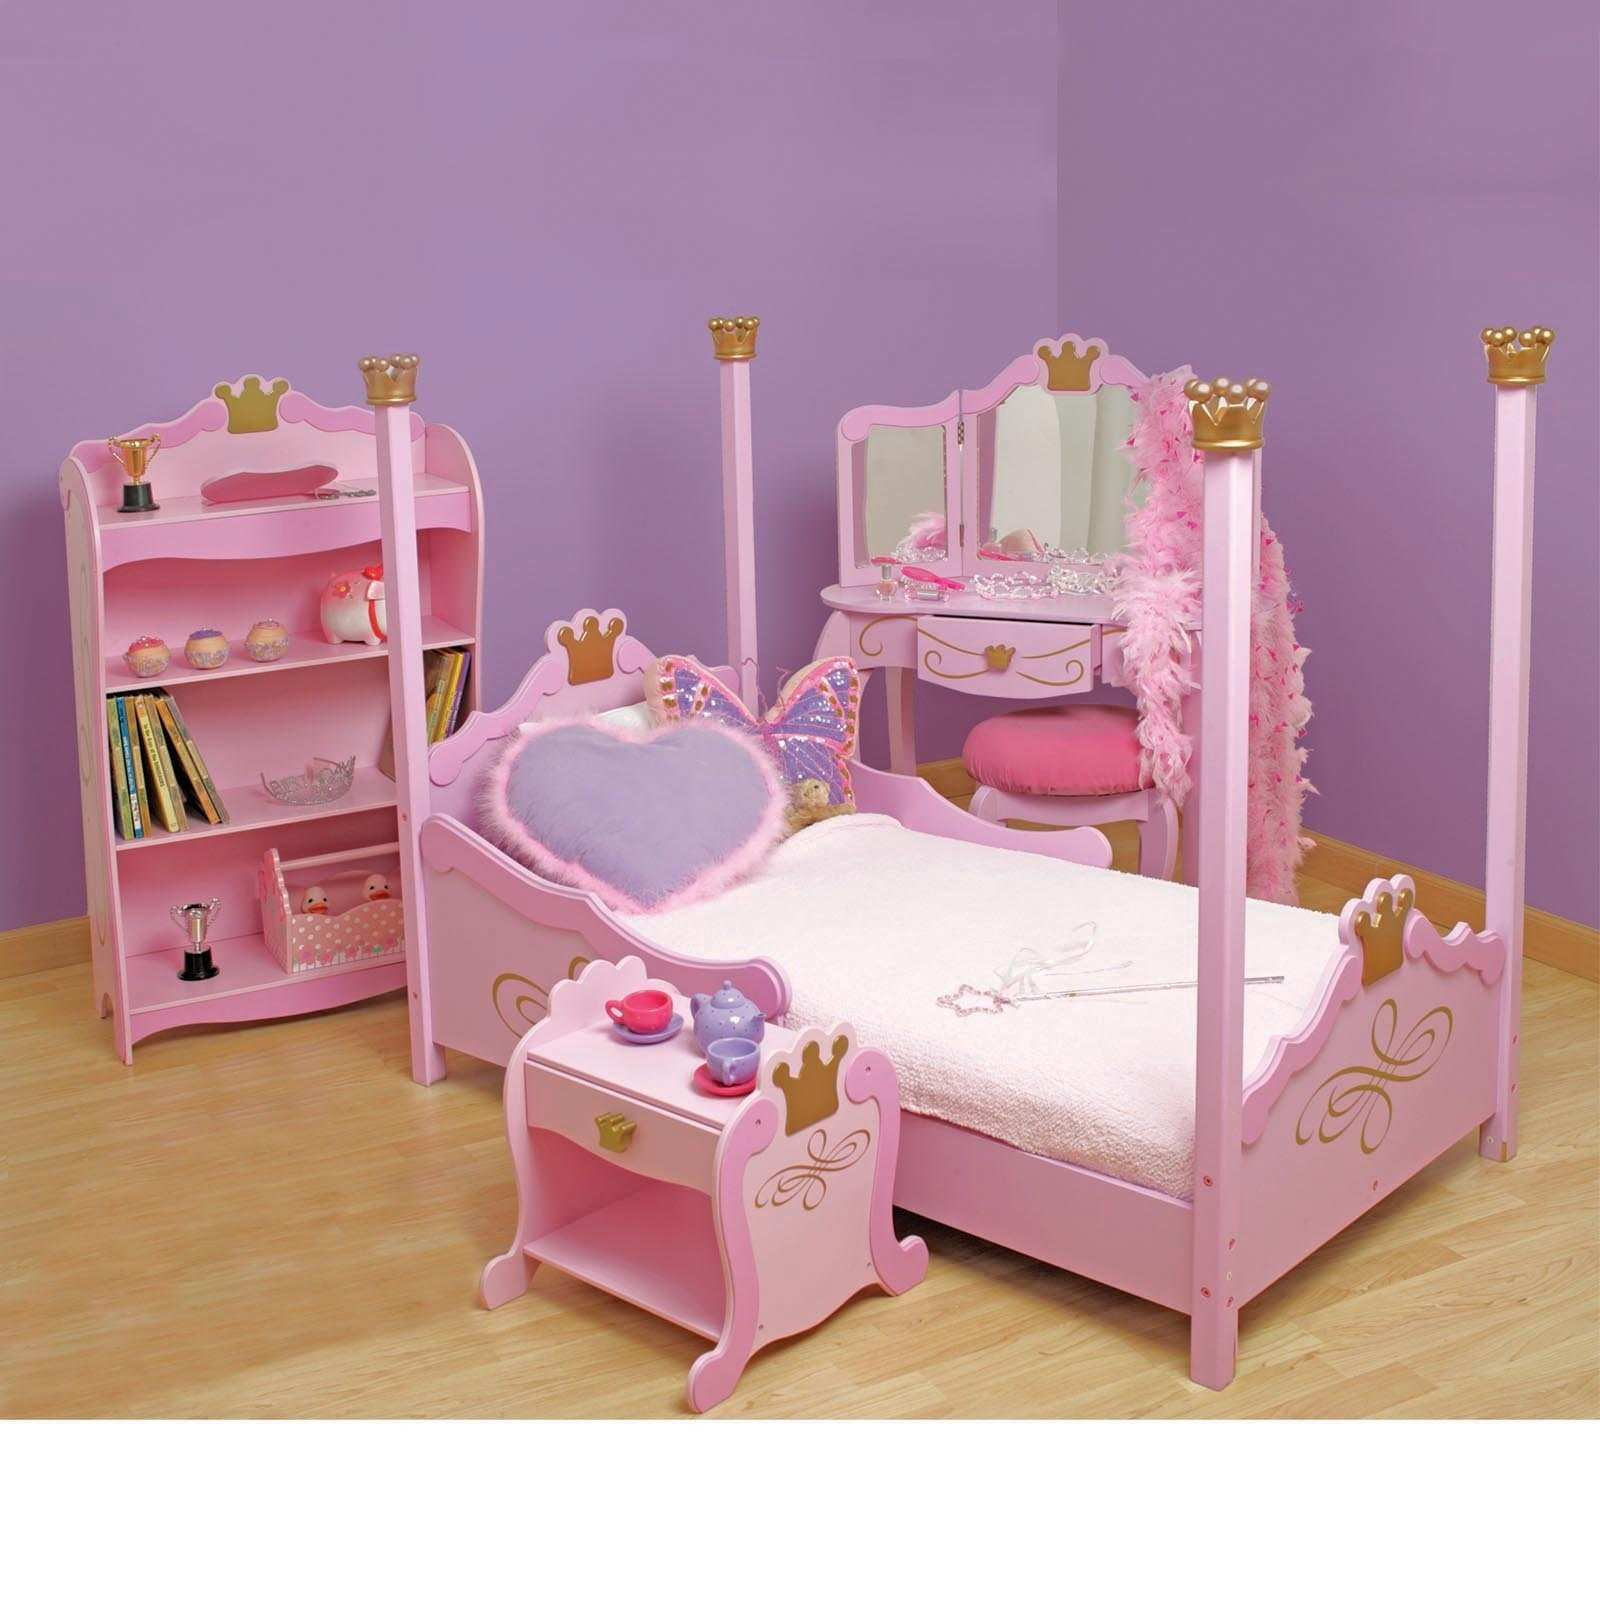 Bedroom Pink Baby Bedroom Ideas Awesome Bedroom Ideas Princess